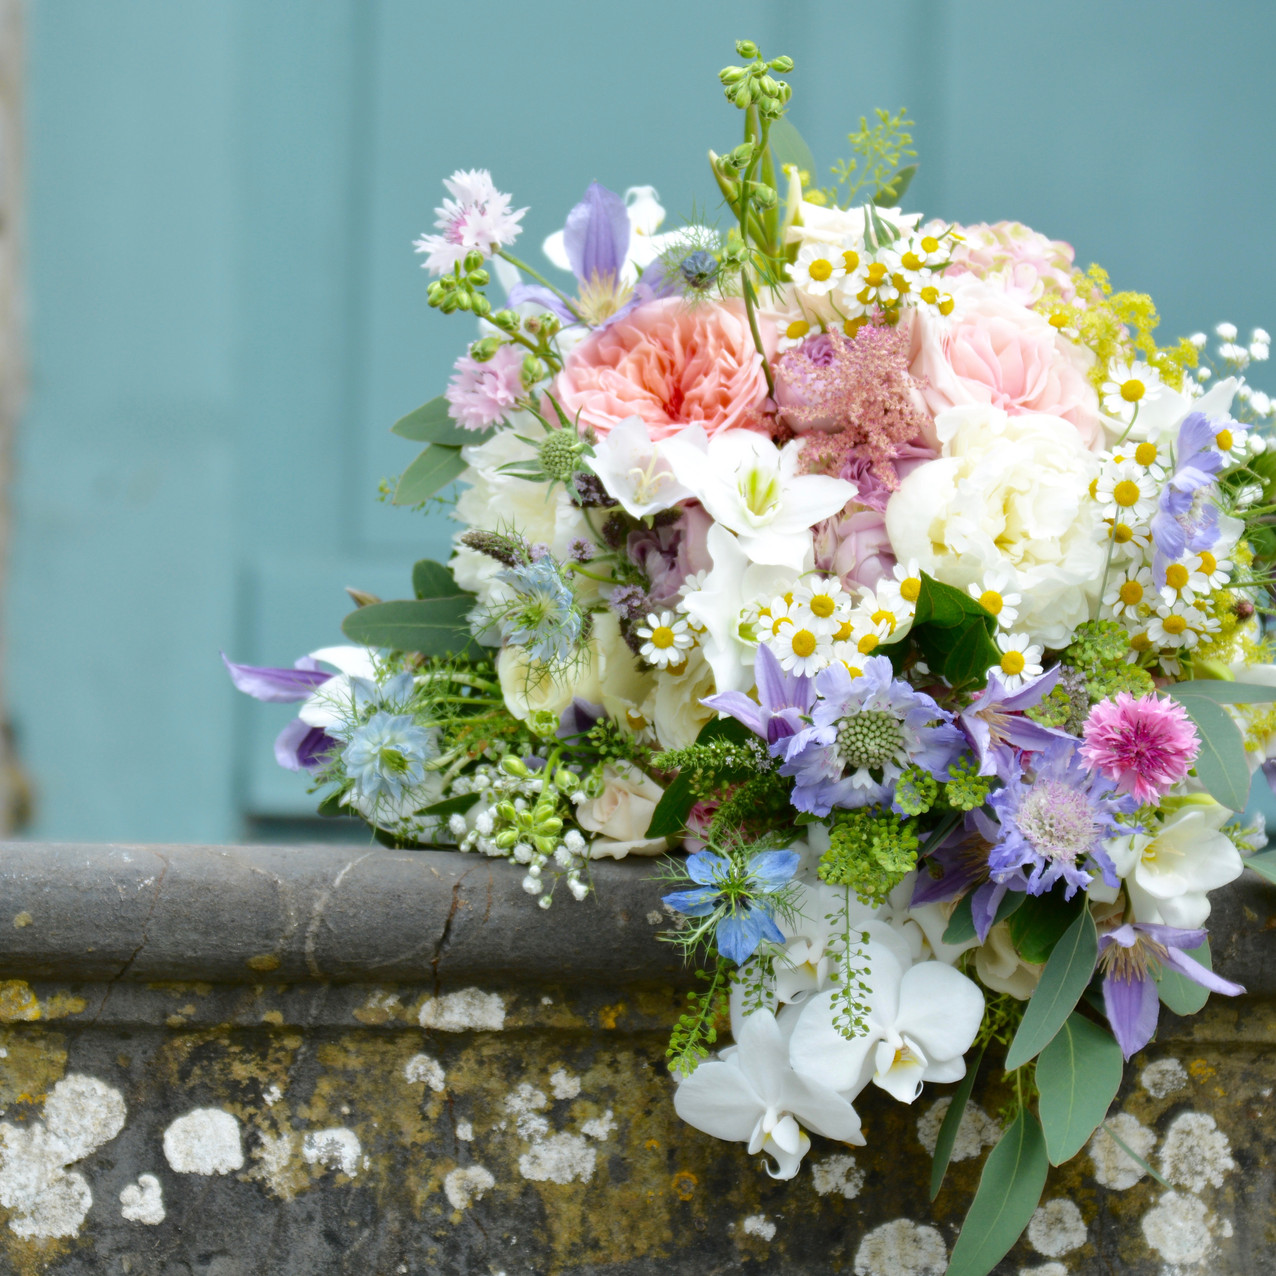 Gathered bridal bouquet of summer flowers, including roses, nigella, peony, clematis, feverfew, alchemila, larkspur, phalaenopsis orchids, oregano, cornflowers, thylaspi, scabious, astilbe, flowering mint with a touch of eucalyptus and stems semi-bound with icory cotton-lace and pearl headed pins. Blue Geranium Florist Totnes Devon